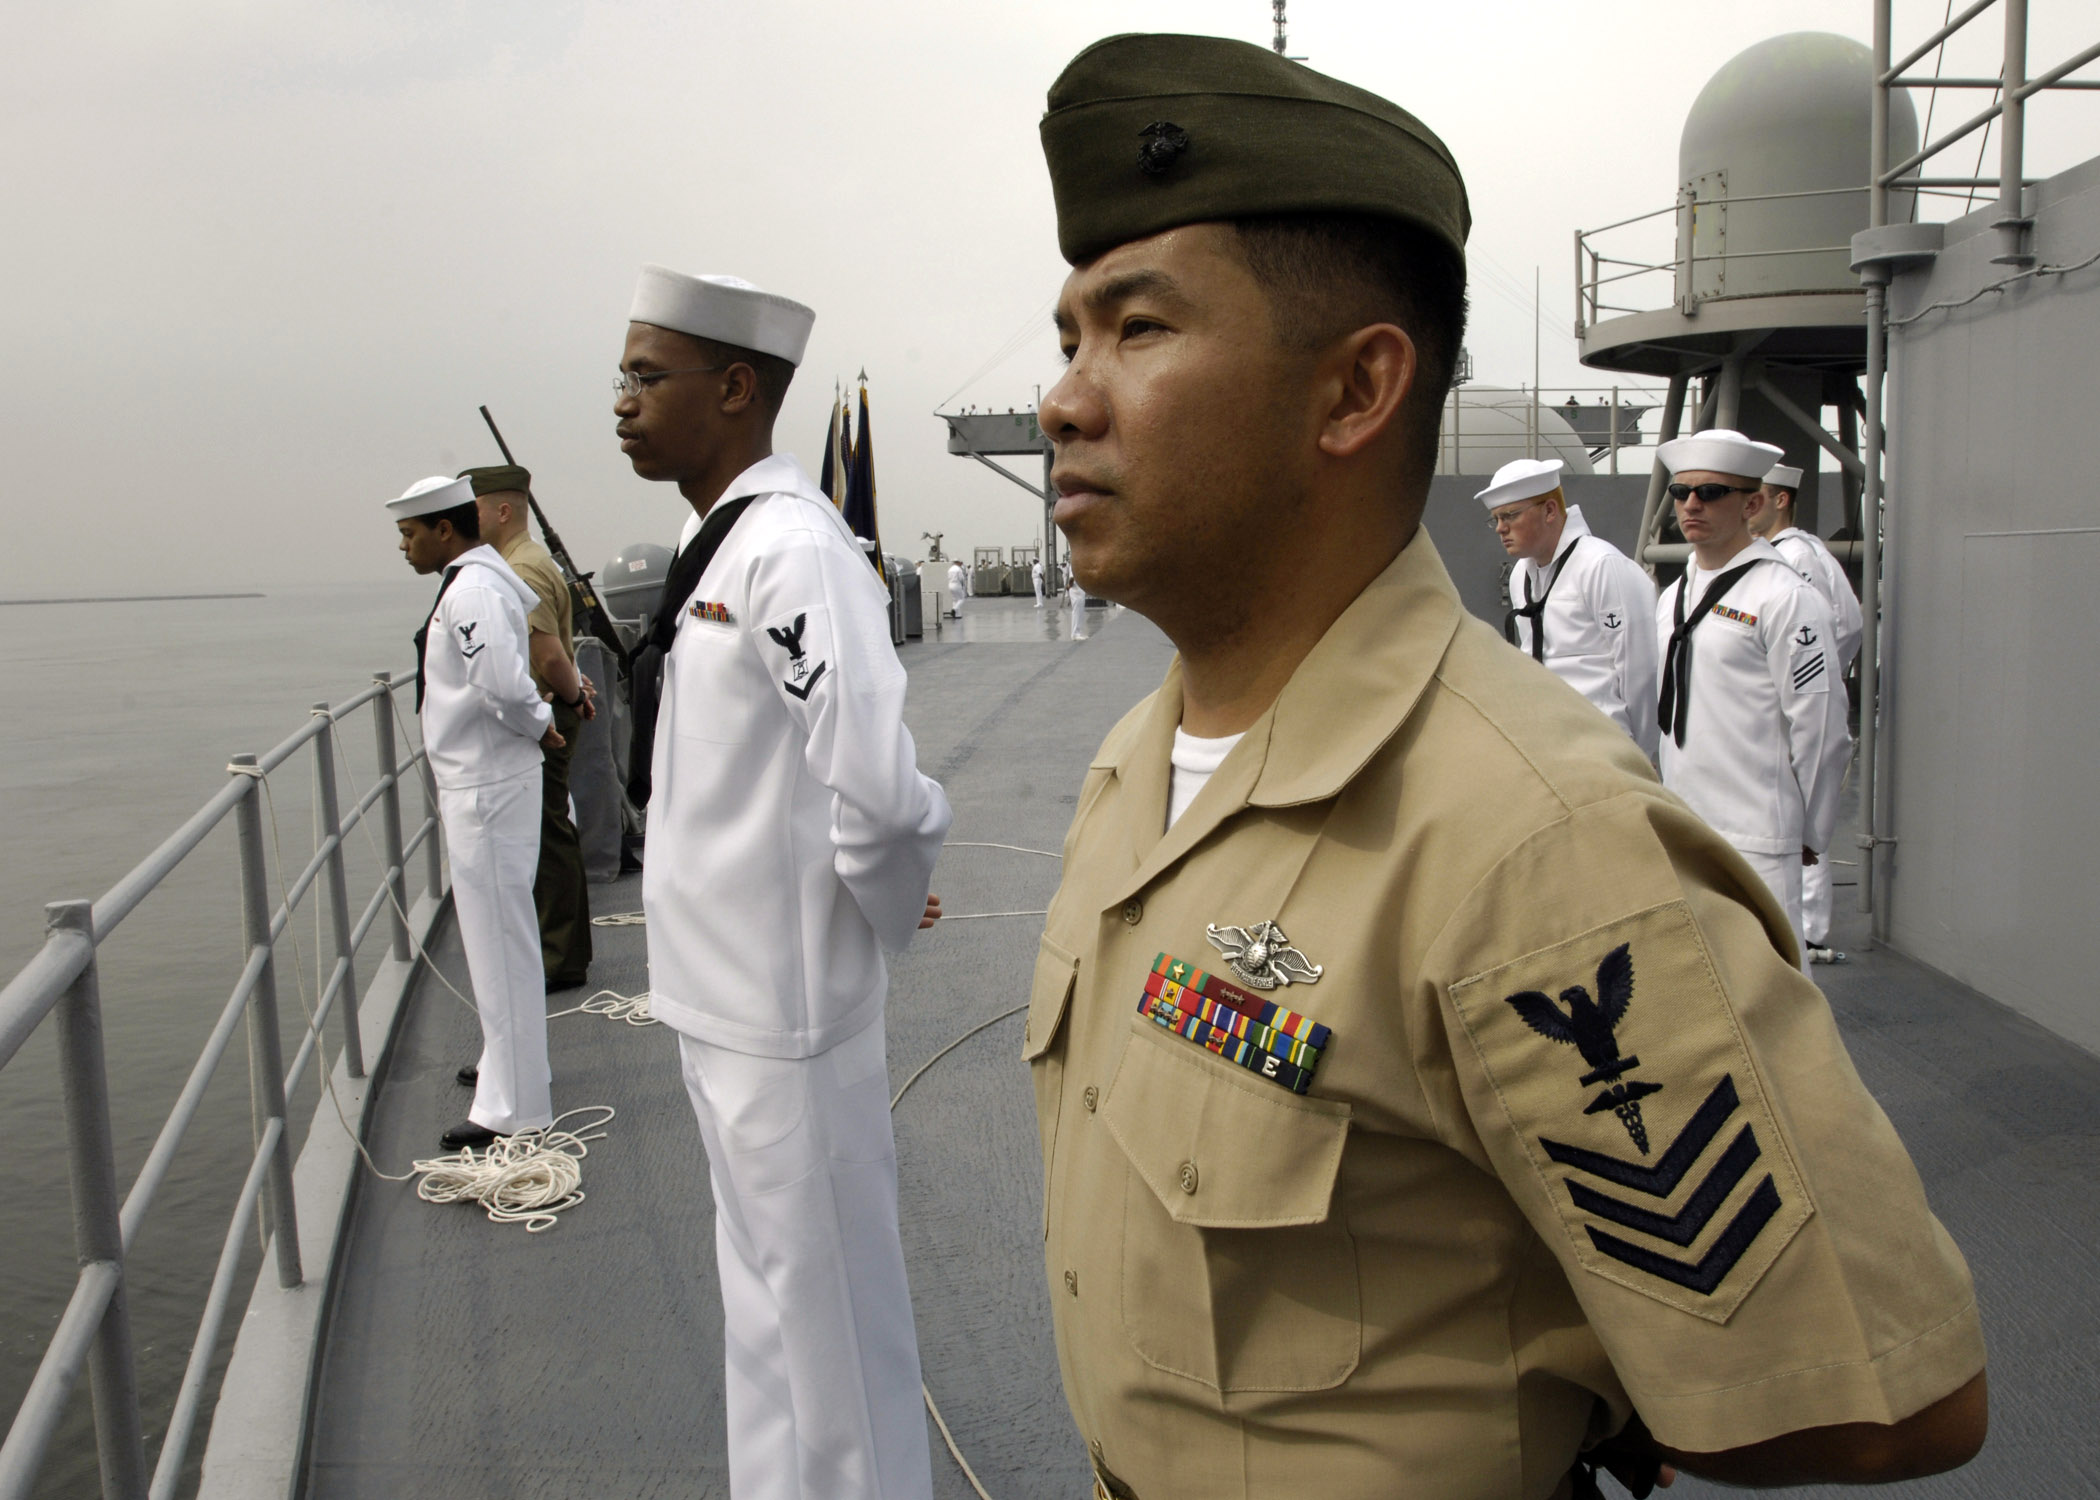 See also: Uniforms of the United States Marine Corps